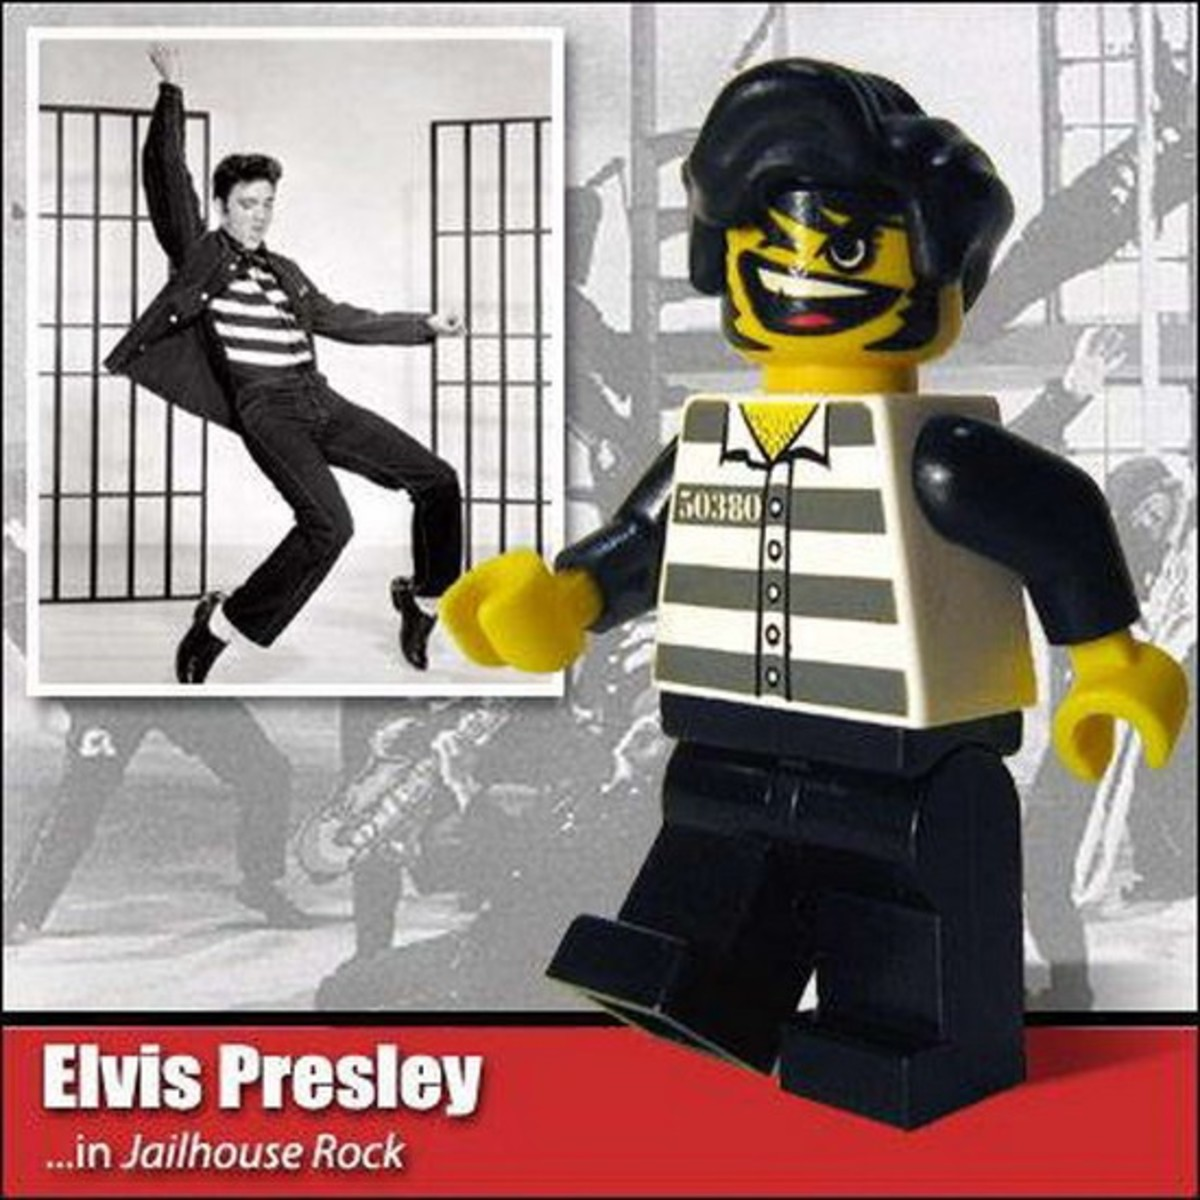 Elvis Presley Lego Photo